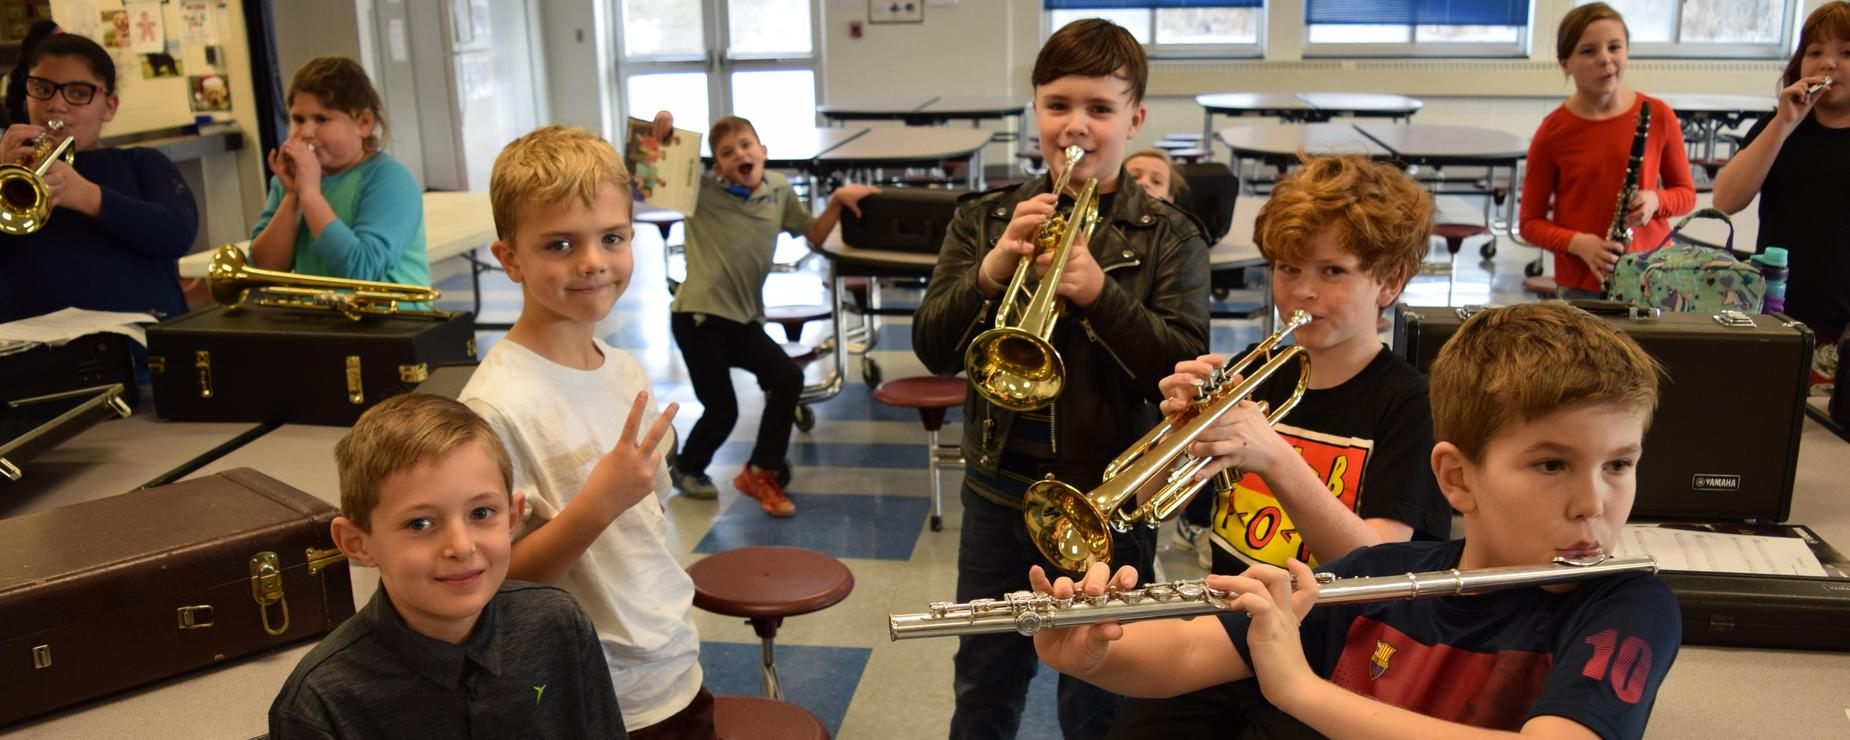 Students warming up their musical instruments